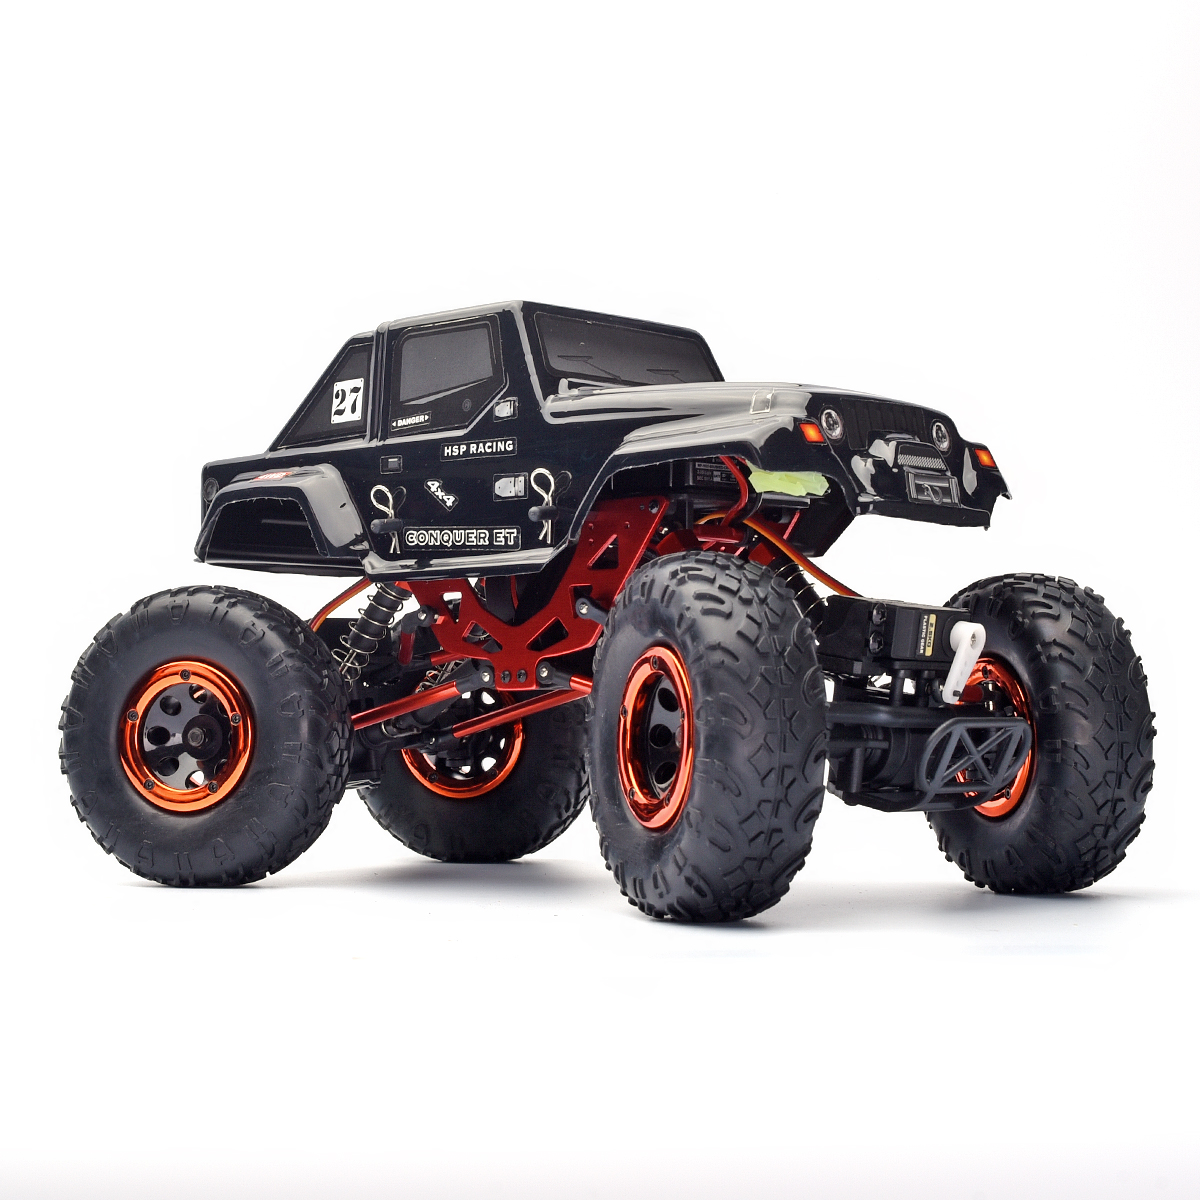 hsp rc car 1 18 scale monster truck rock crawler 4wd off. Black Bedroom Furniture Sets. Home Design Ideas